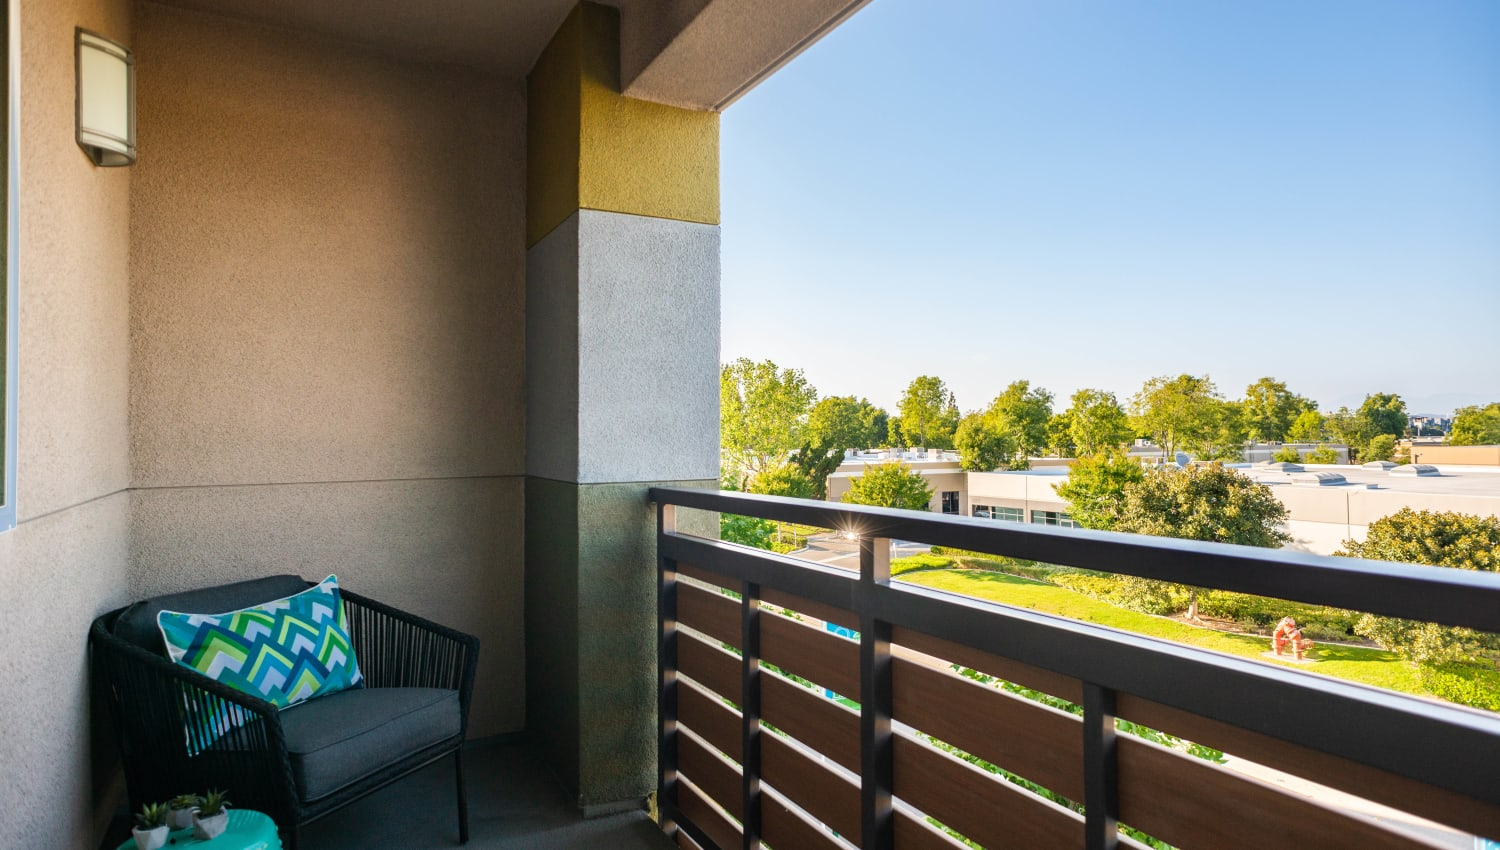 Terrific view of the area from a model home's private balcony at Fusion Apartments in Irvine, California